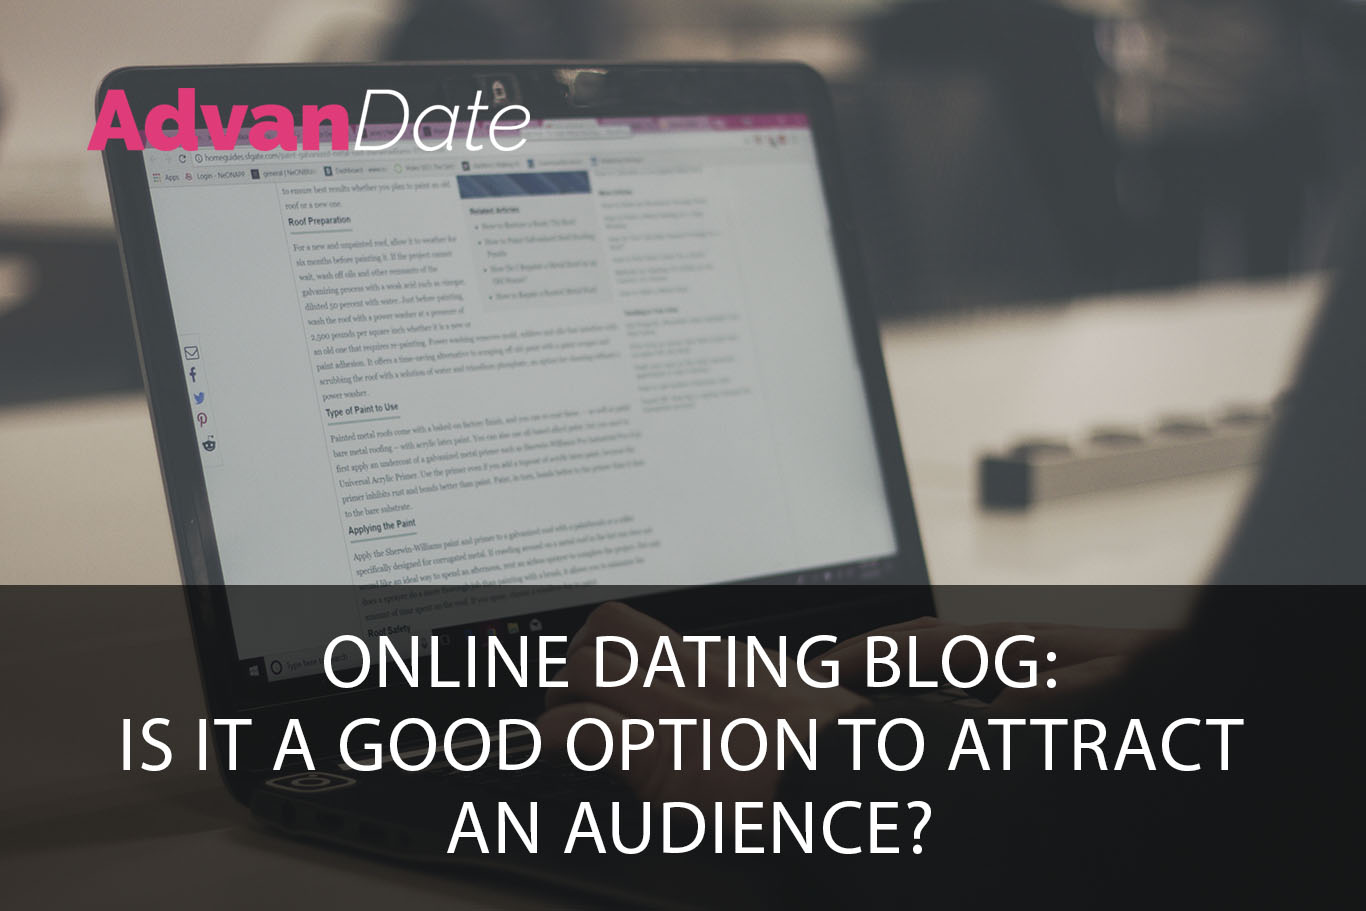 Online Dating Blog: is it a good option to attract an audience?